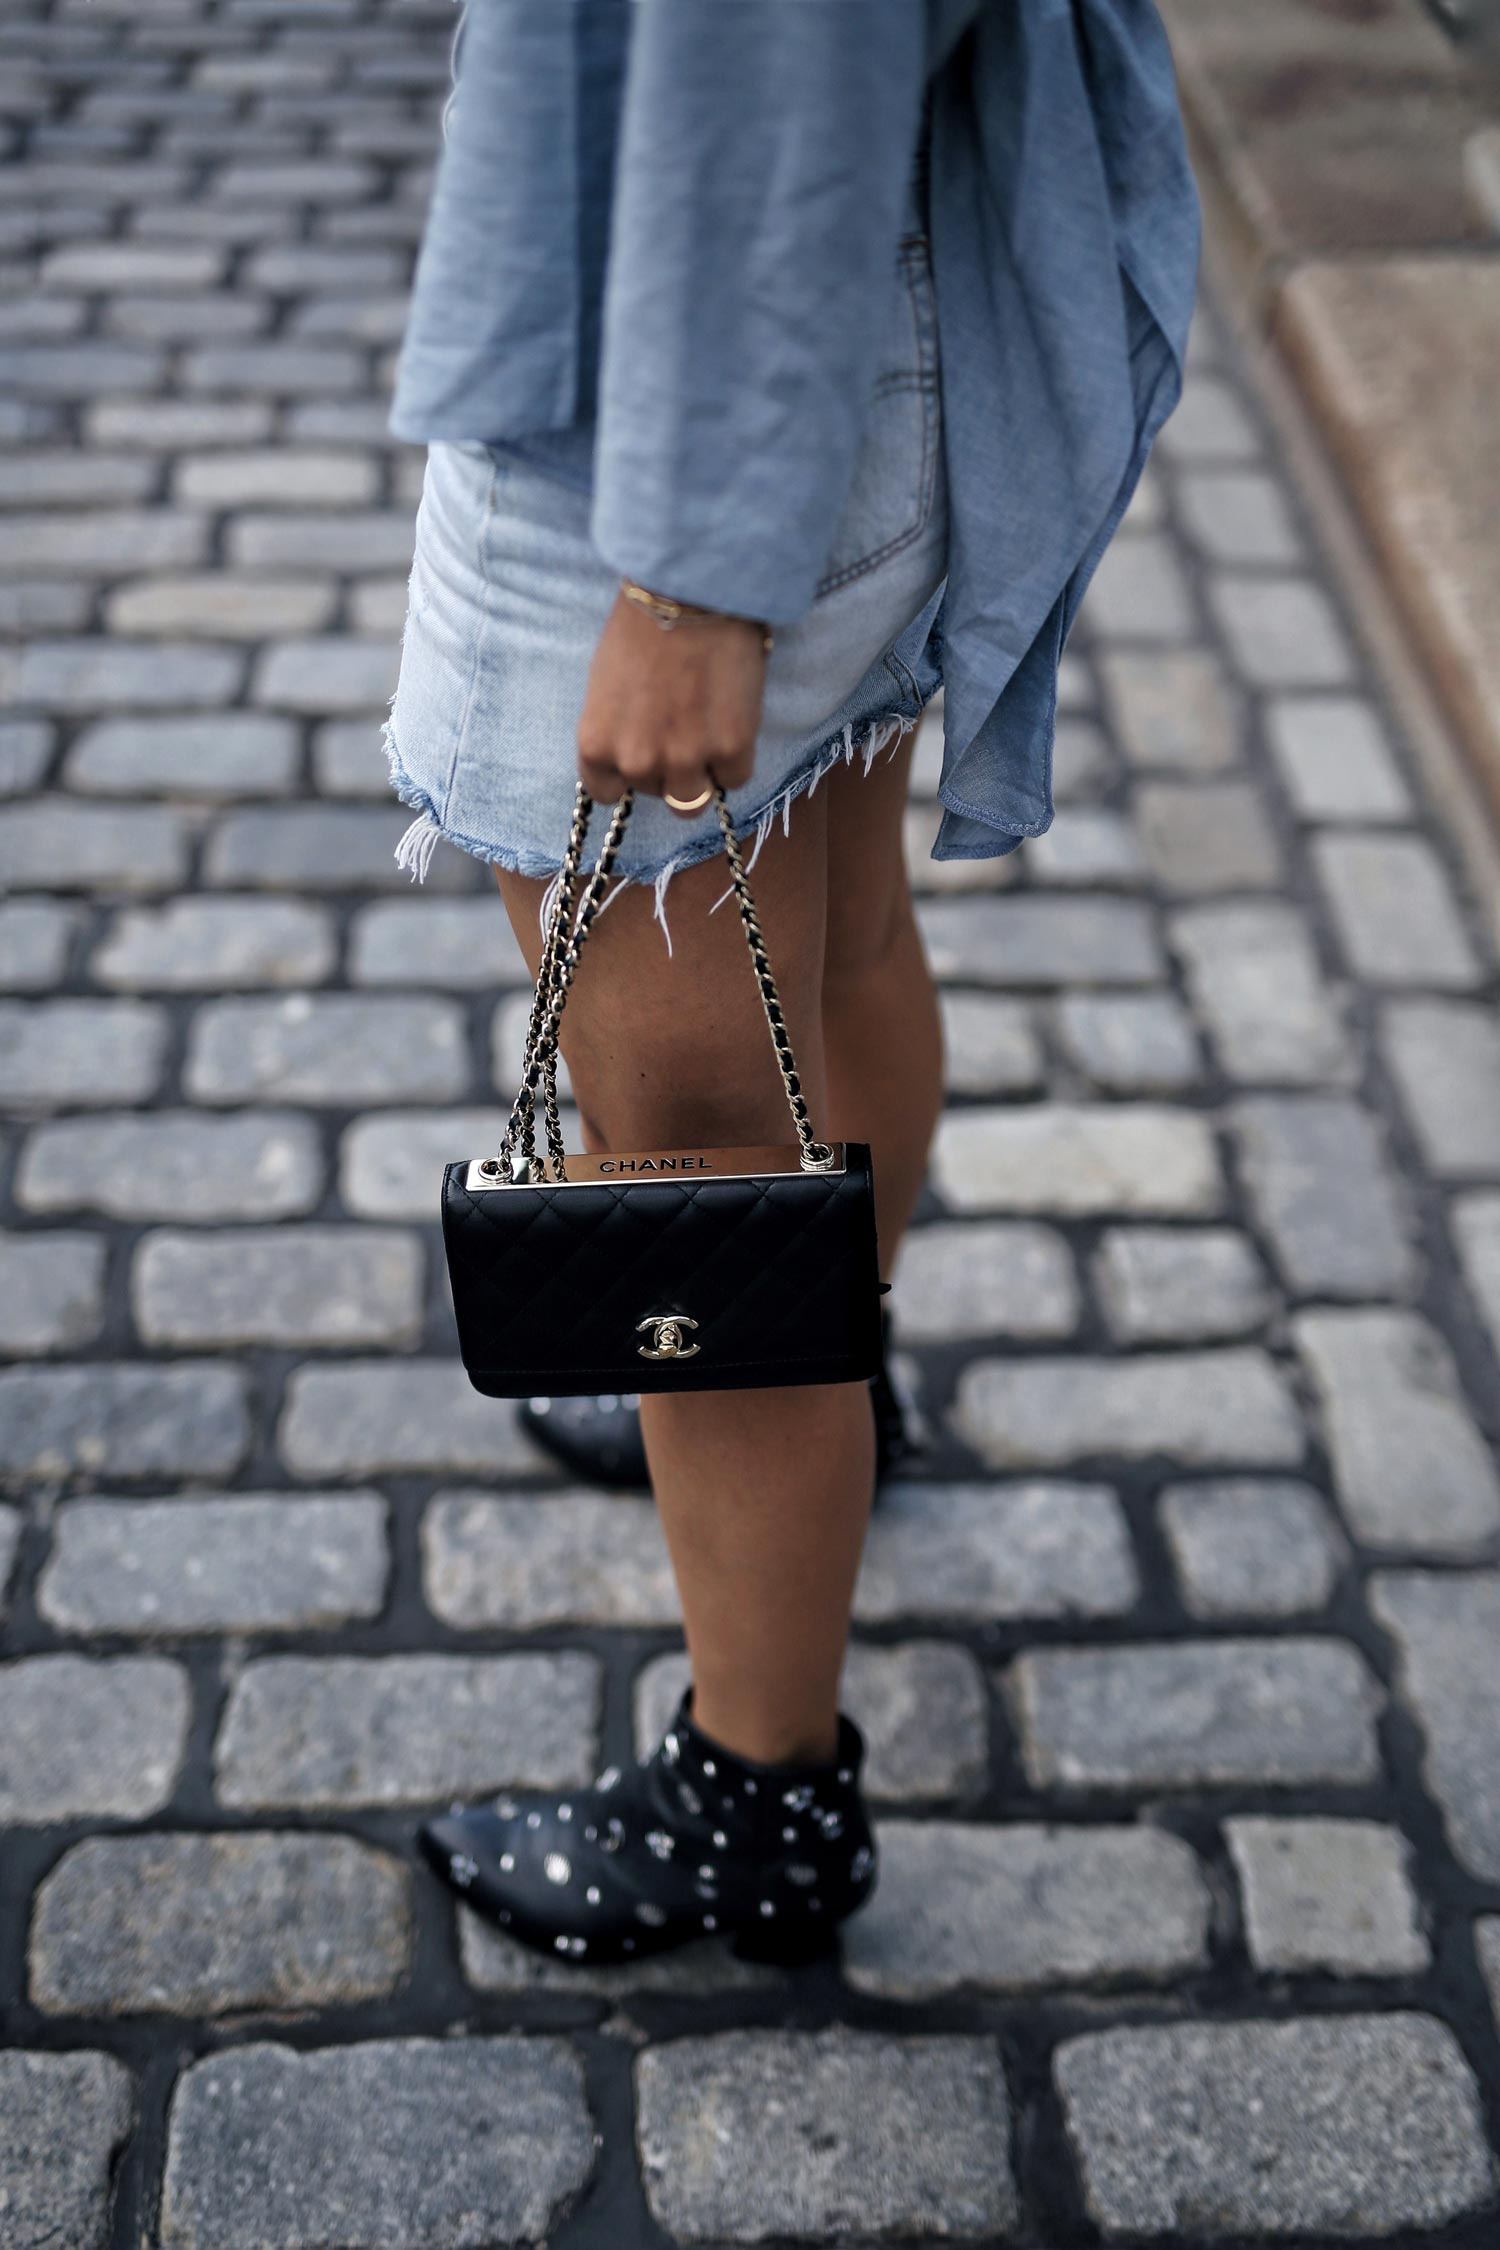 Chanel-Wallet-On-A-CHain